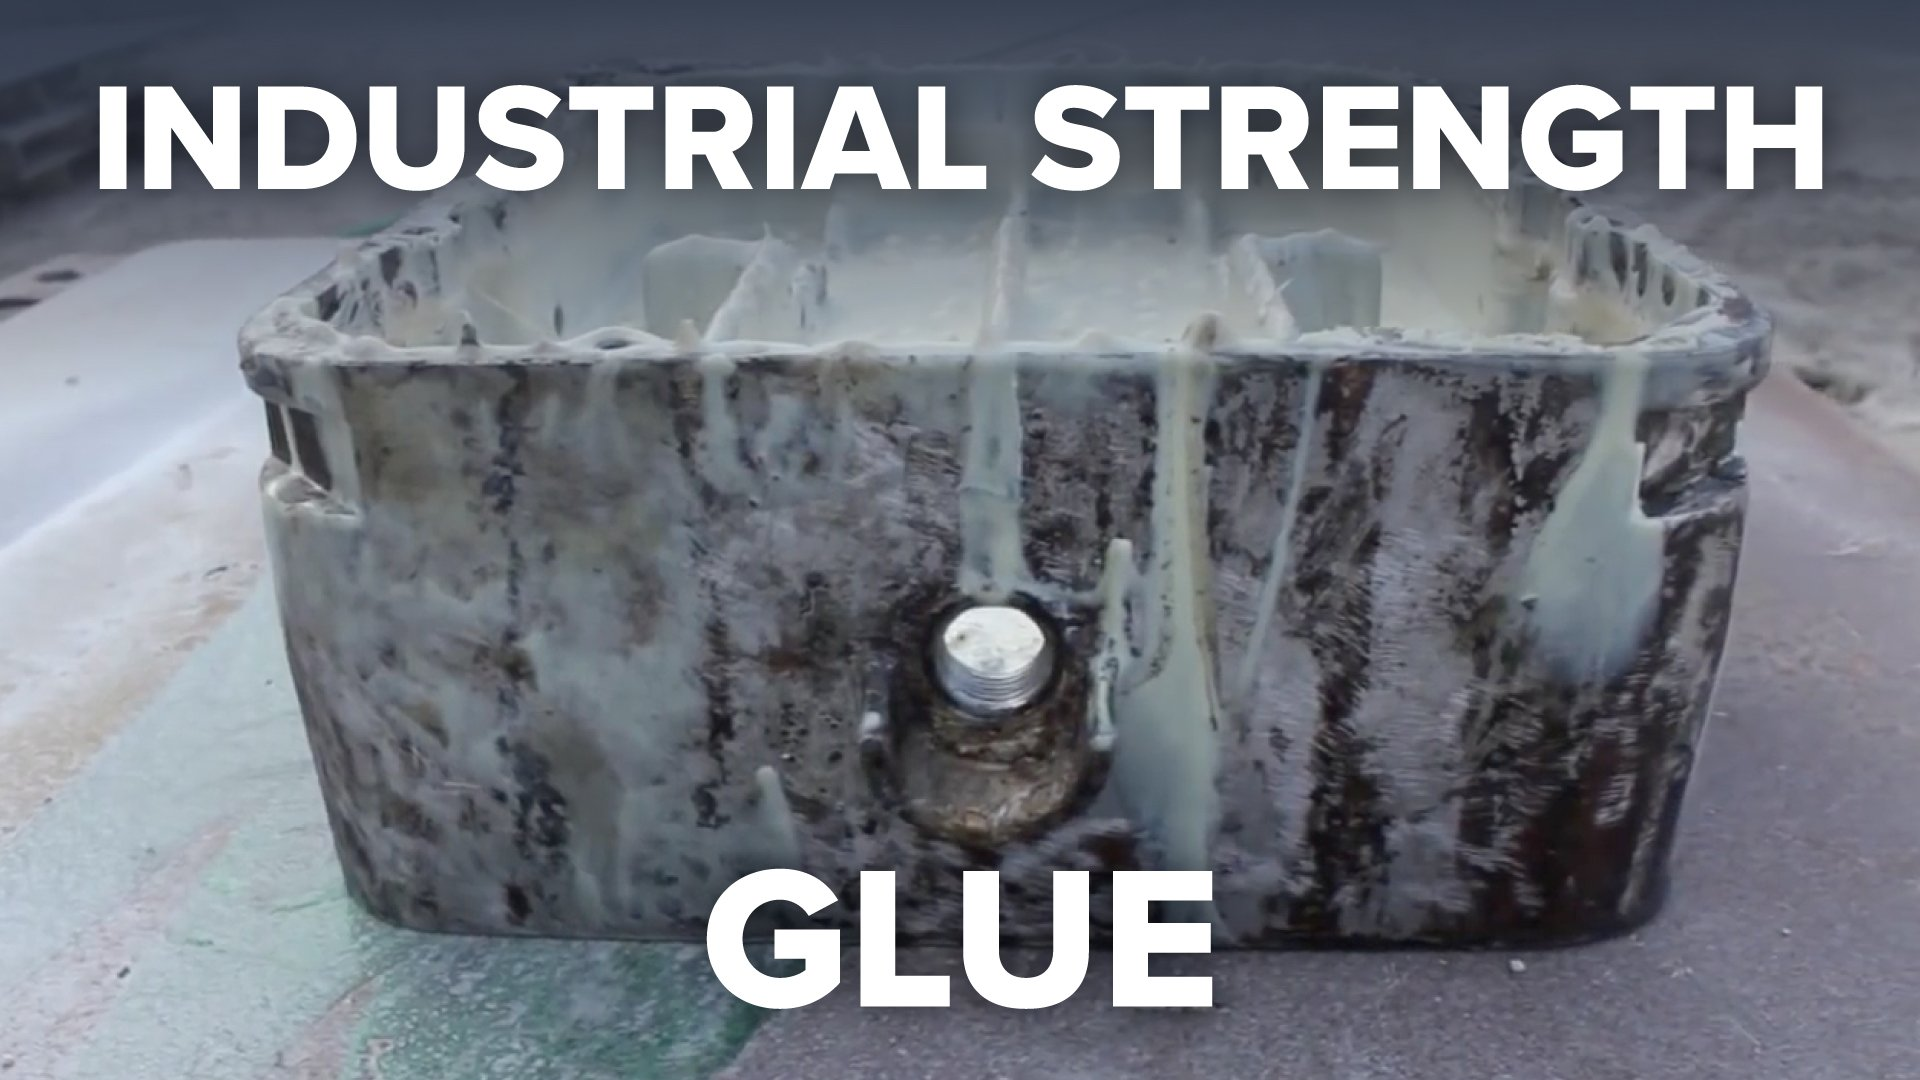 Dustless-Blasting-Industrial-Strength-Glue!-Thumbnail-Words